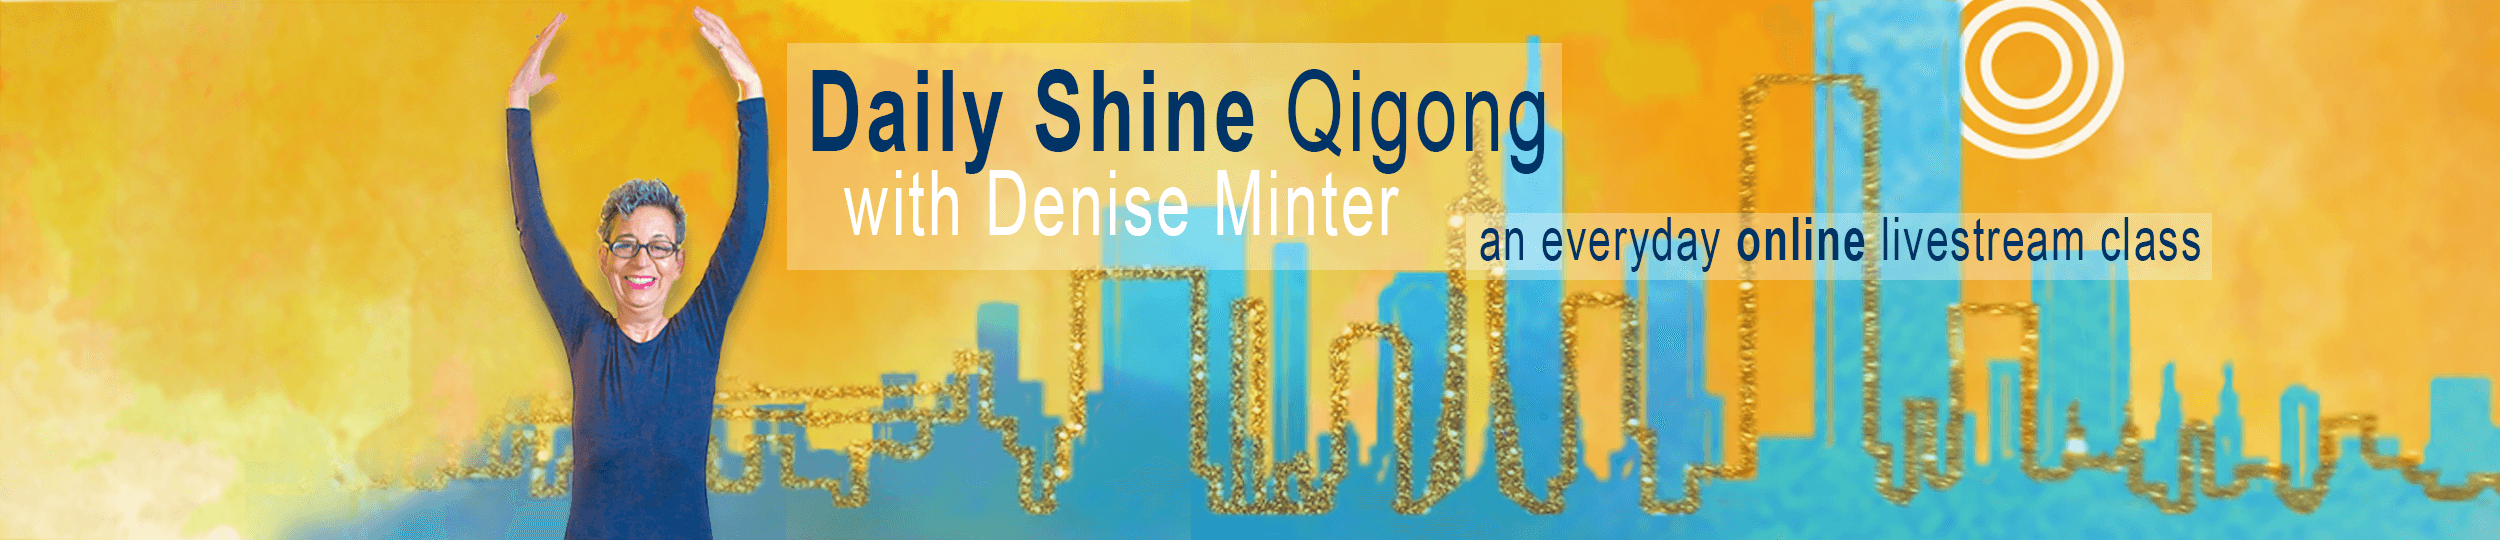 Waking Up Energy Daily Shine Qigong